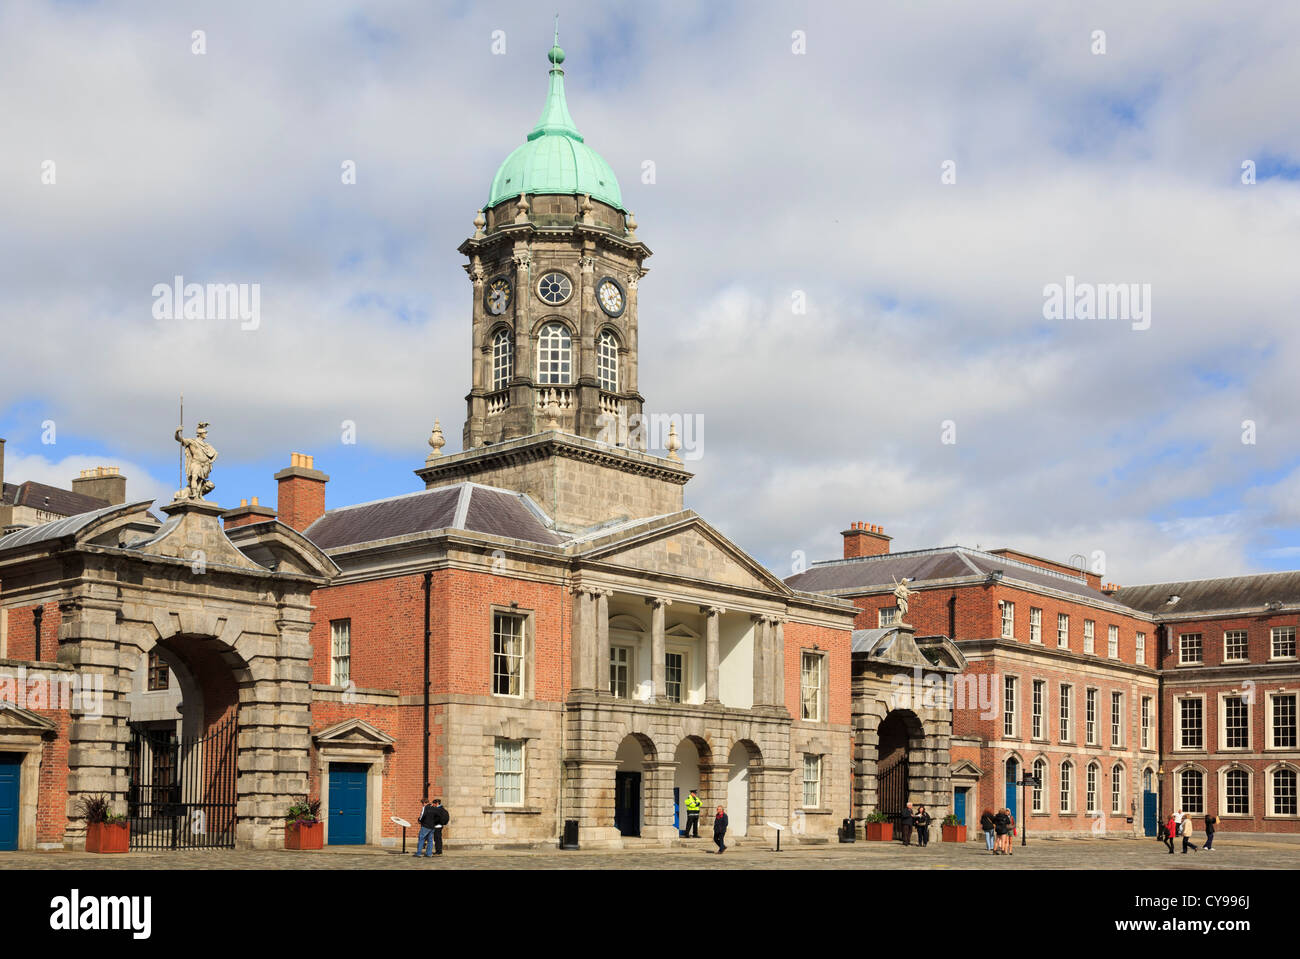 Fortitude gate beside 18th century Bedford tower in Dublin castle's Great Courtyard with tourists in Dublin, - Stock Image